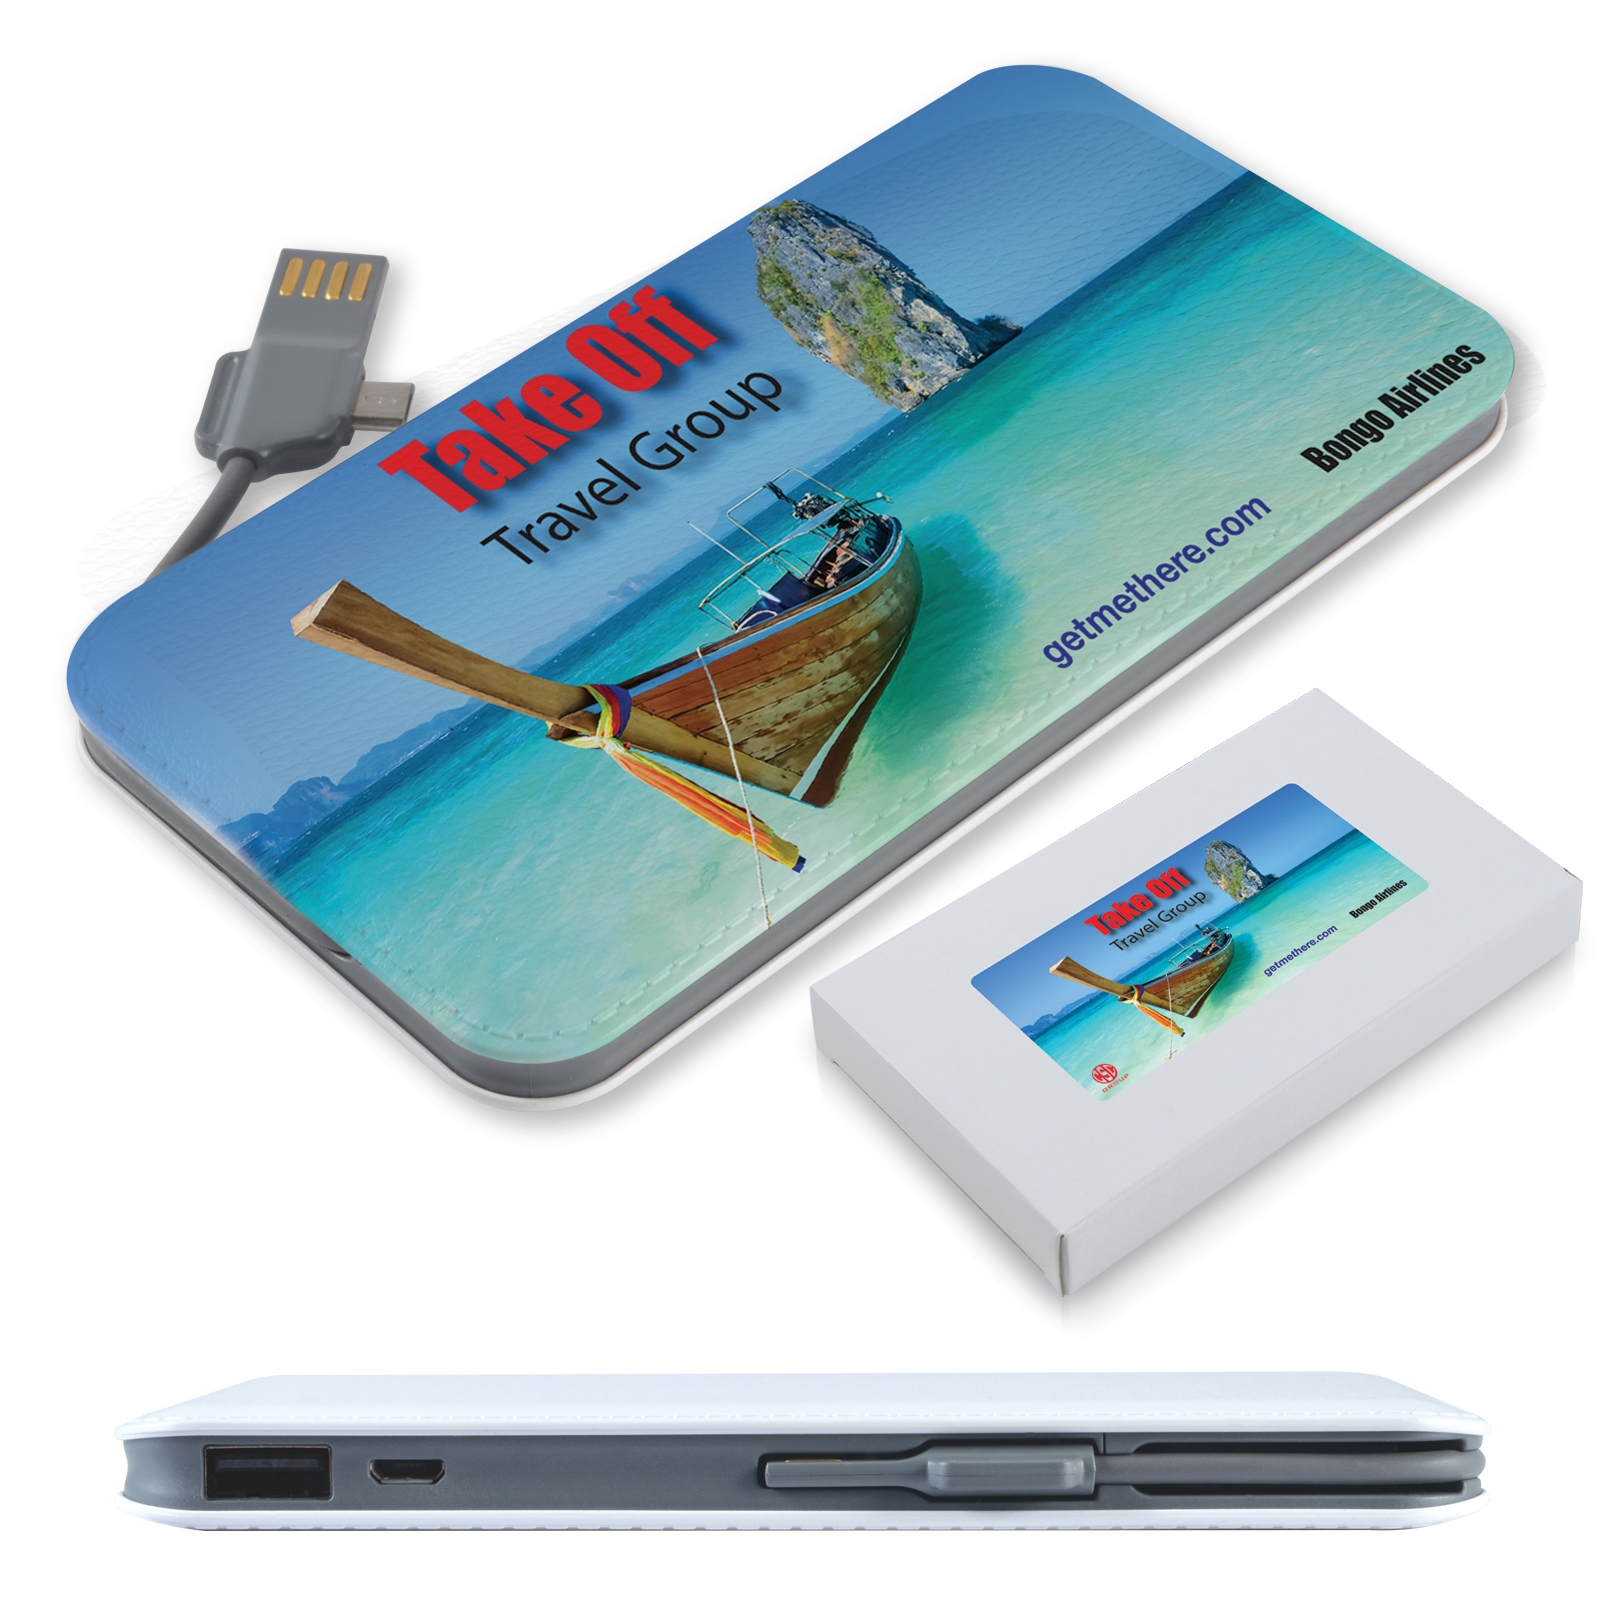 Surge Power Bank - Includes a 1 colour printed logo, From $18.8